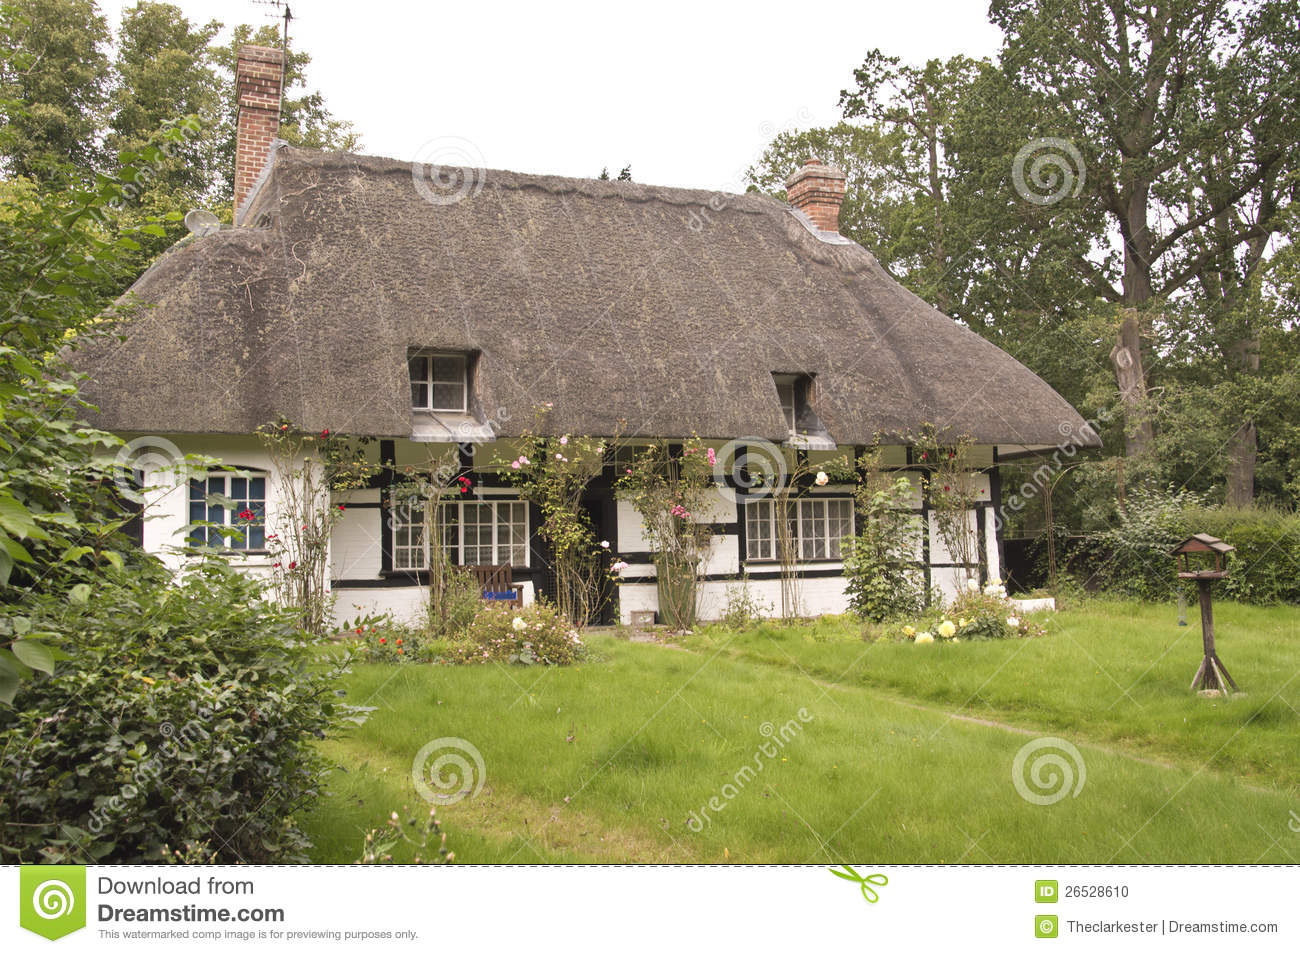 Oxford (AL) United States  City pictures : Traditional Thatched Roof Cottage Stock Photo Image: 26528610